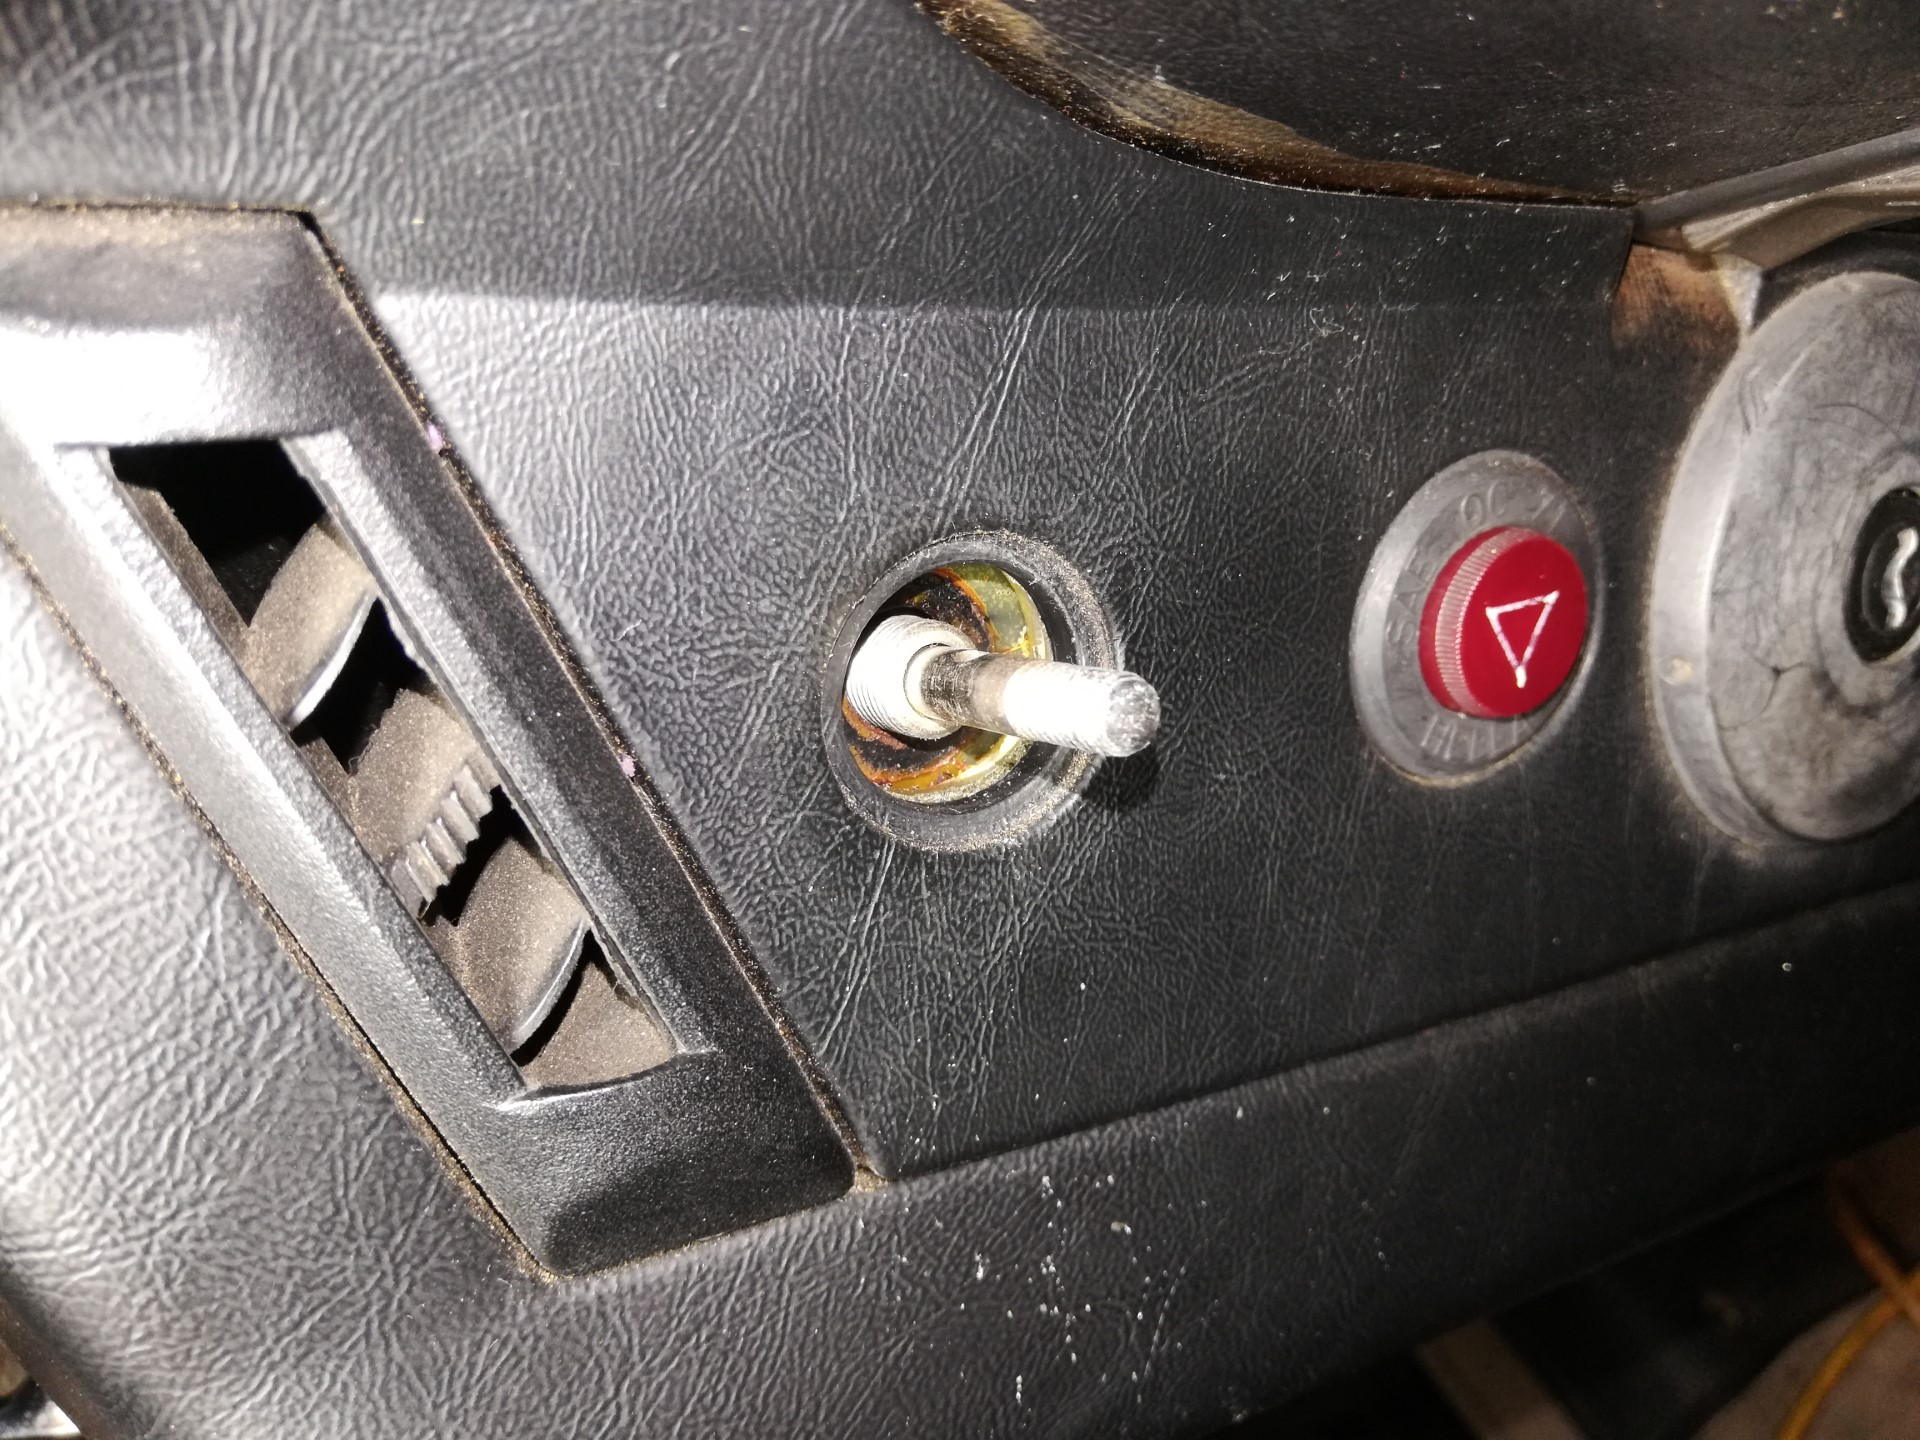 Air-cooled Porsche 911 headlight switch removal.